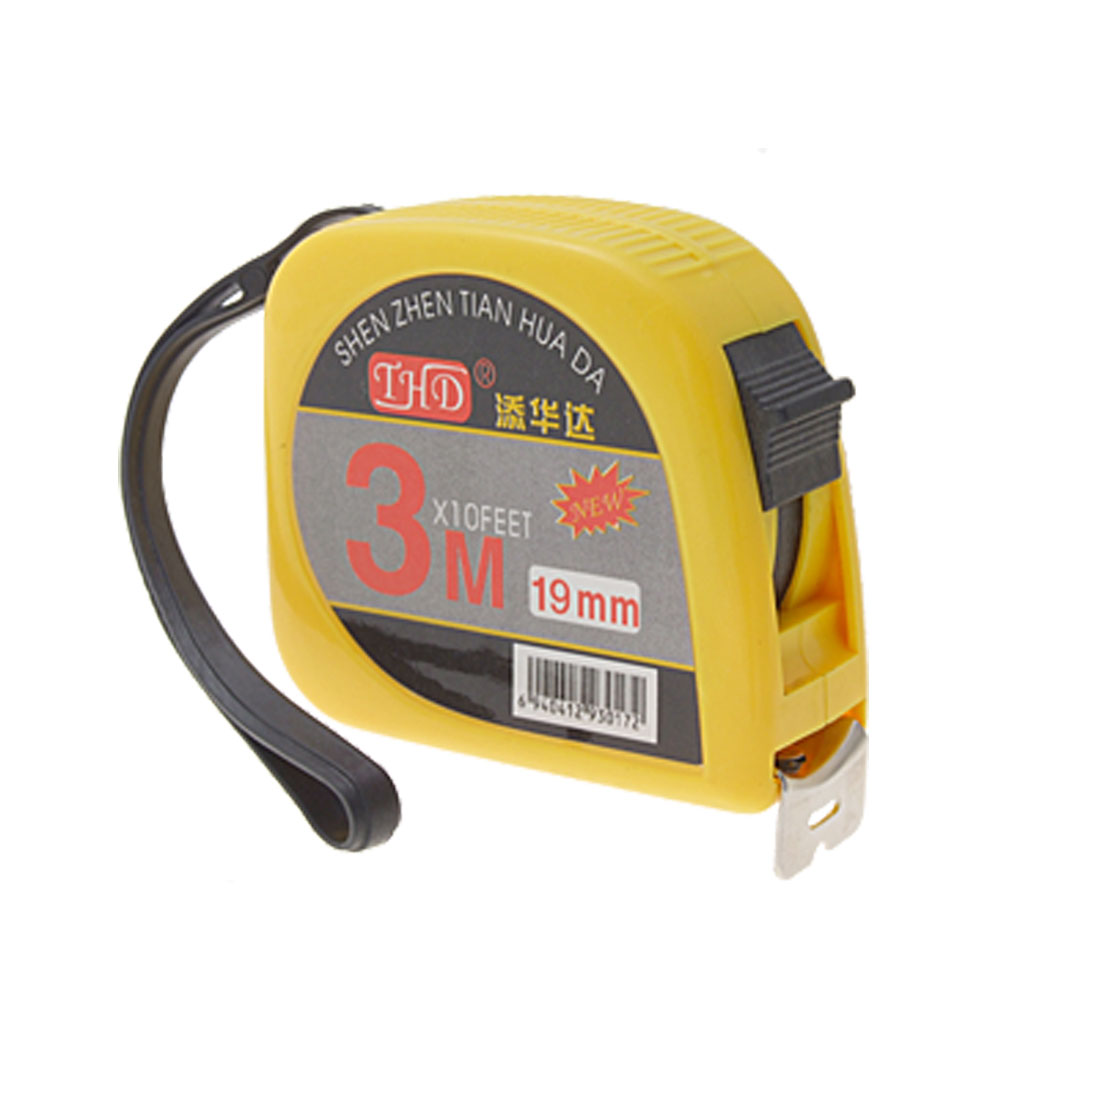 Yellow-Black-3-Meters-Steel-Tape-Measure-Measuring-Tool